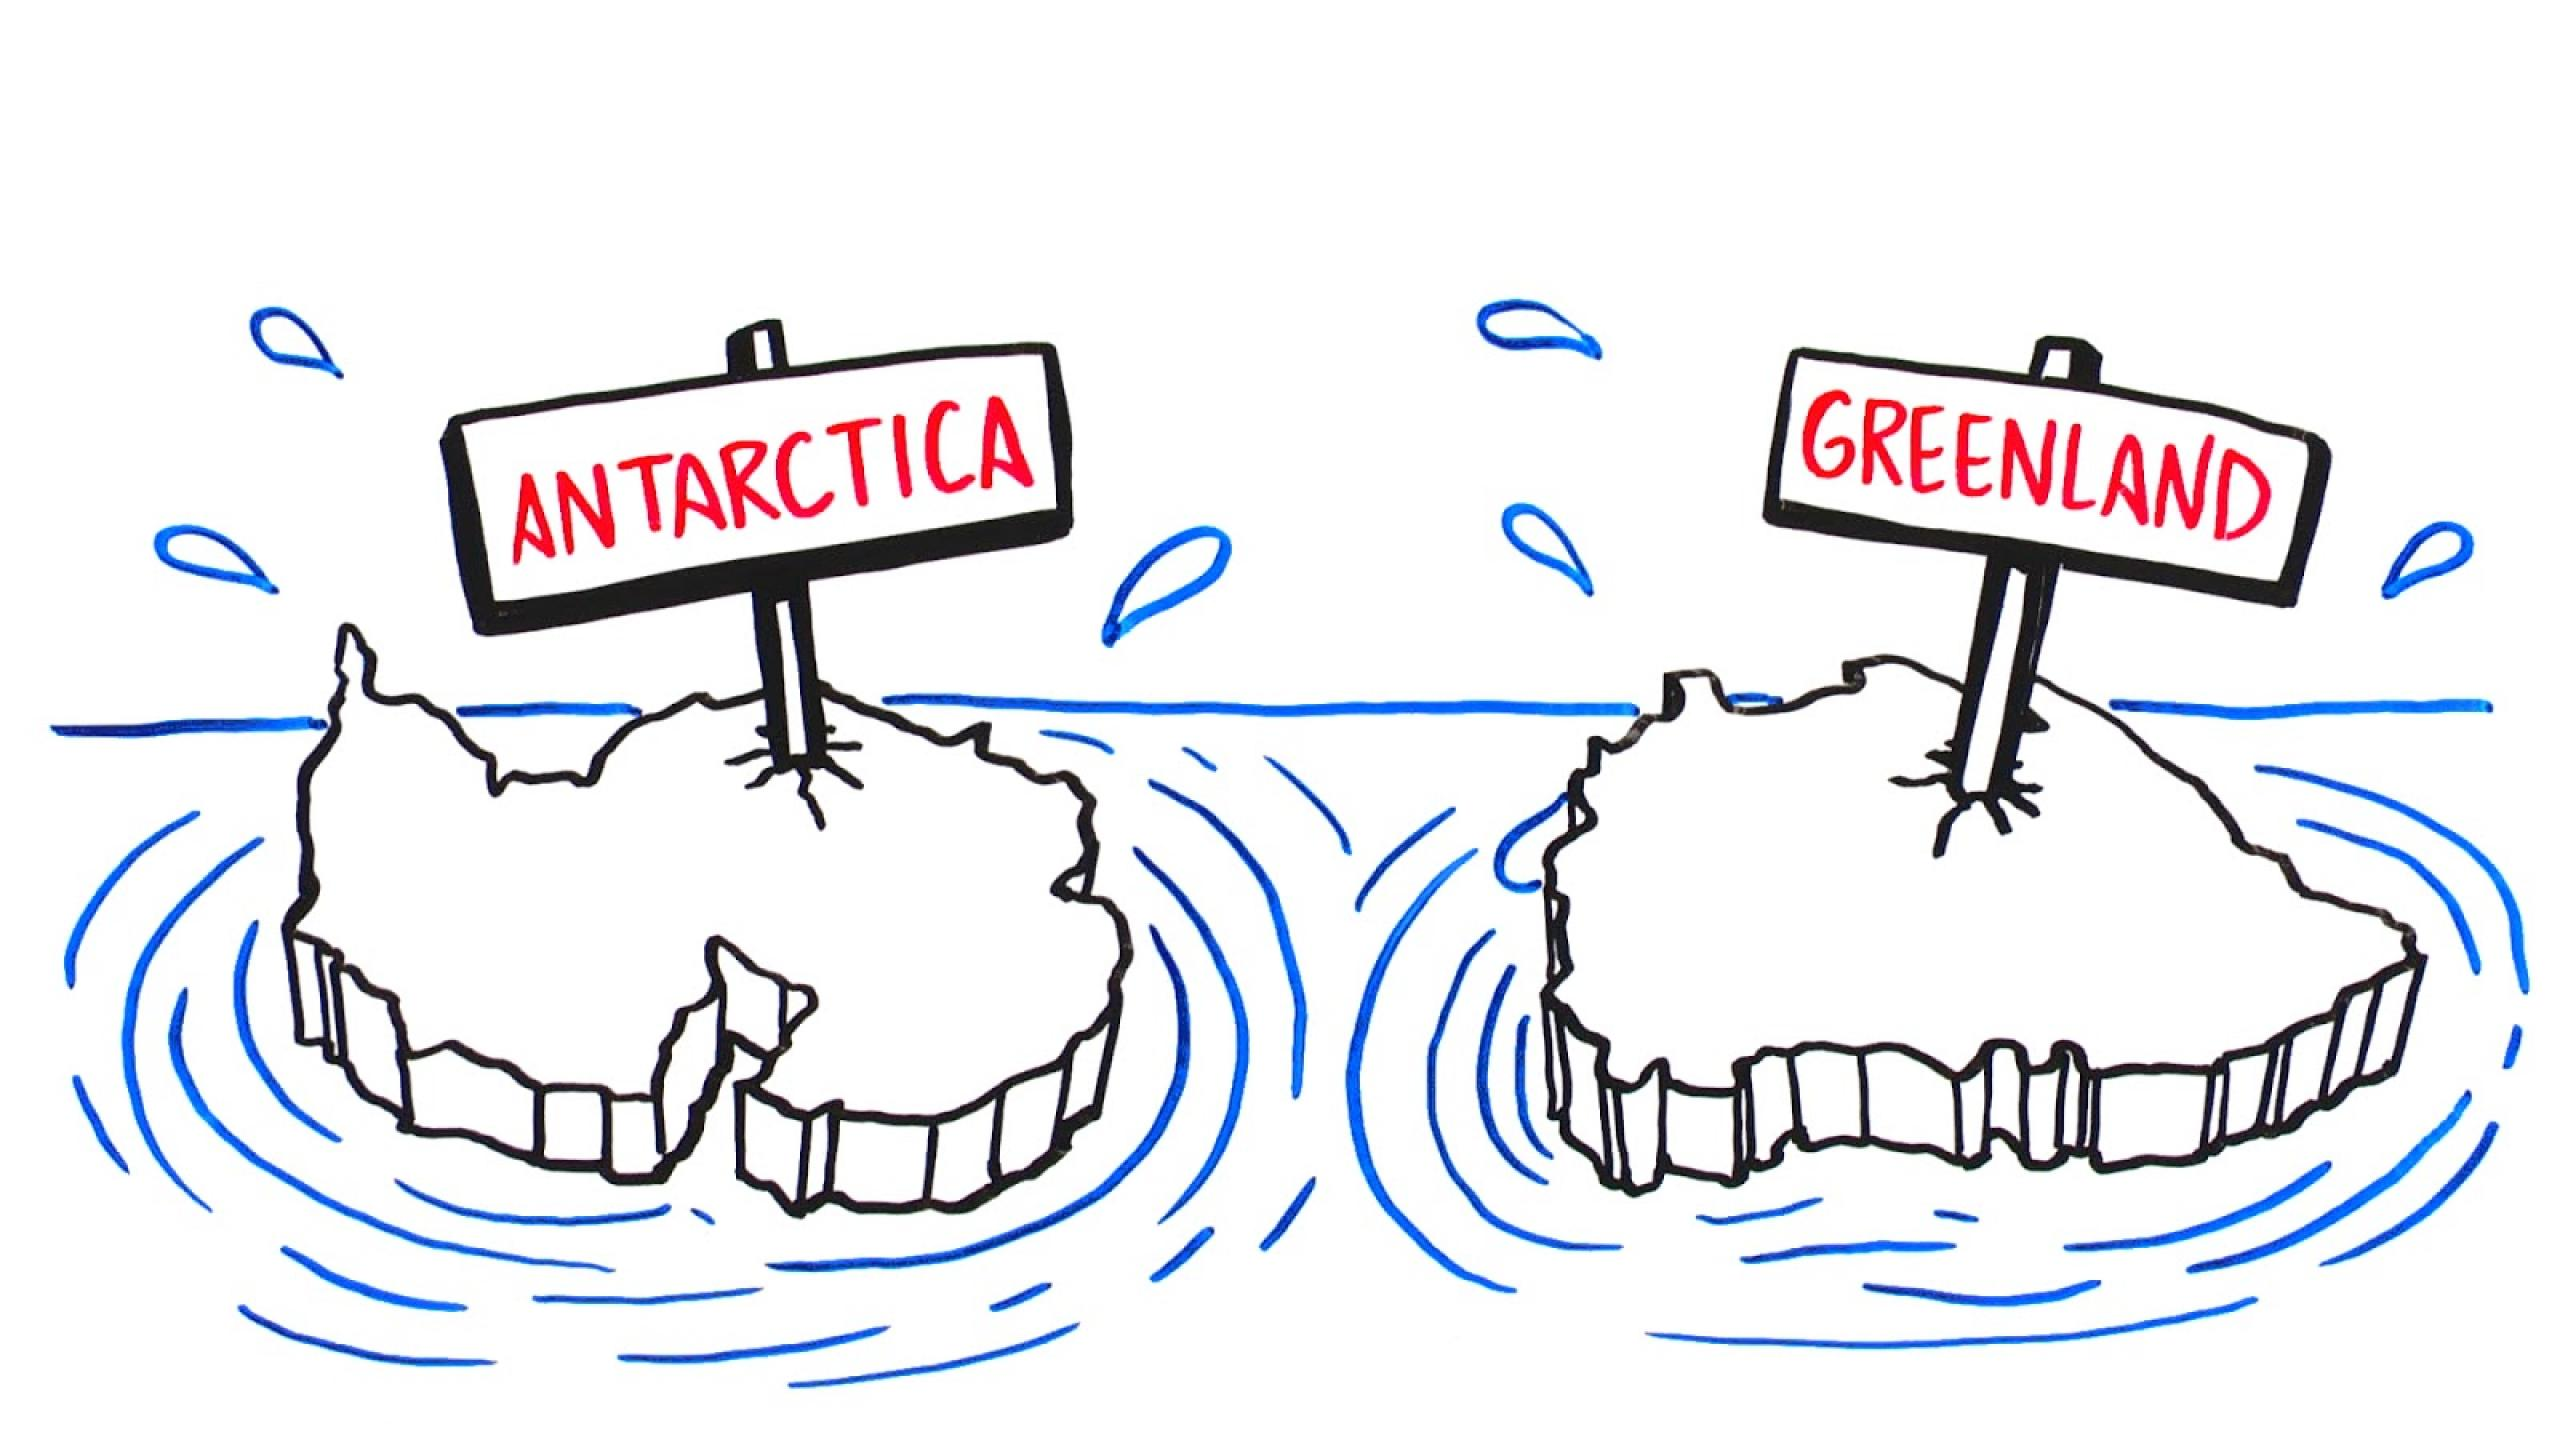 Cartoon-style Illustration of Antarctica and Greenland surrounded by a body of water